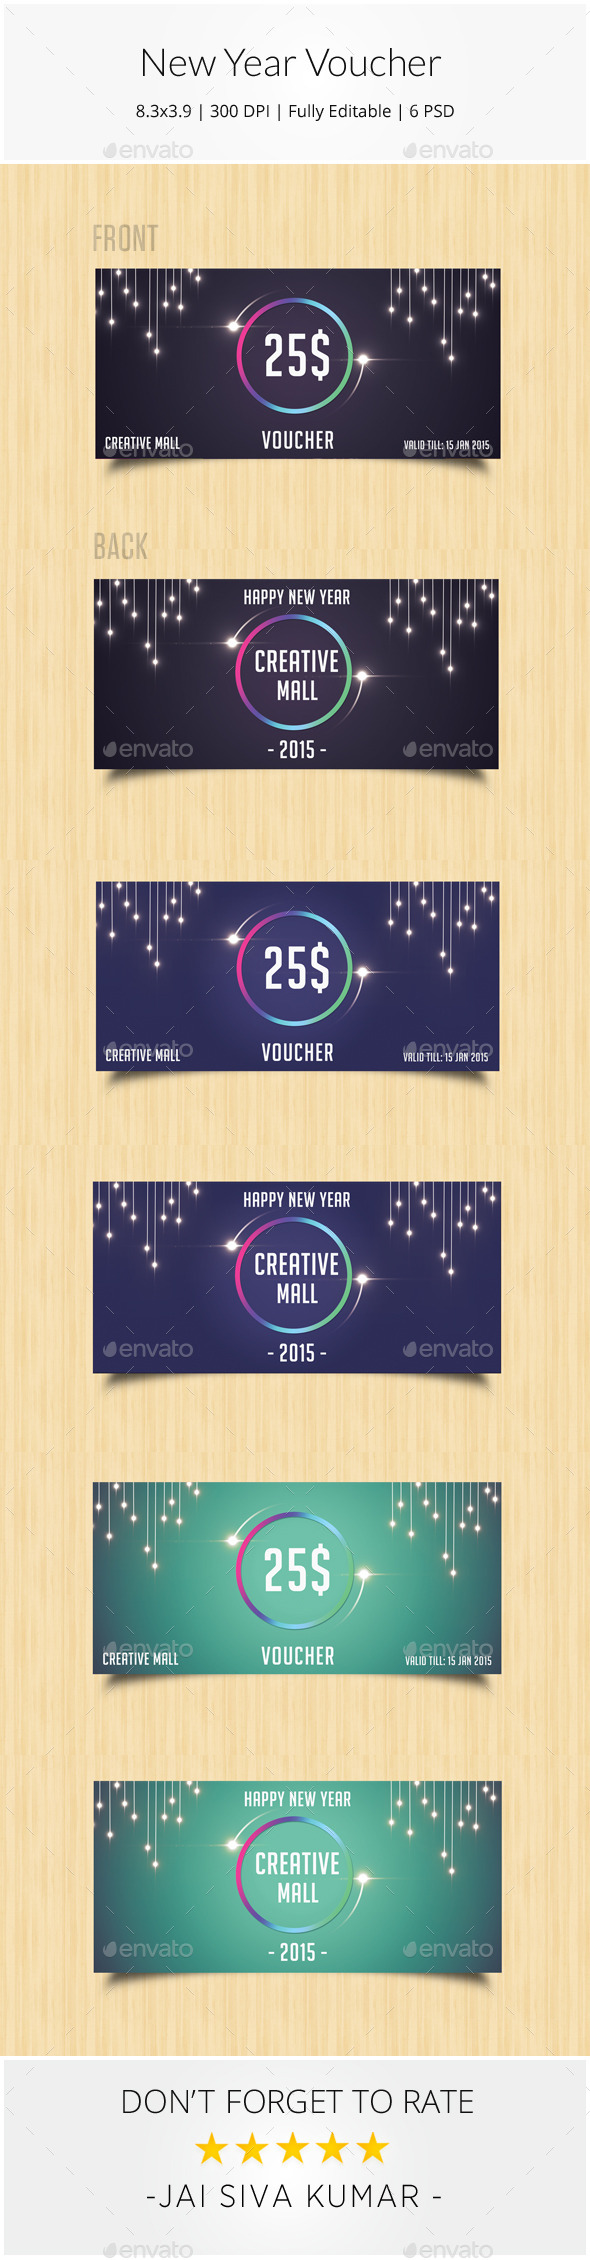 New Year Gift Voucher - Loyalty Cards Cards & Invites